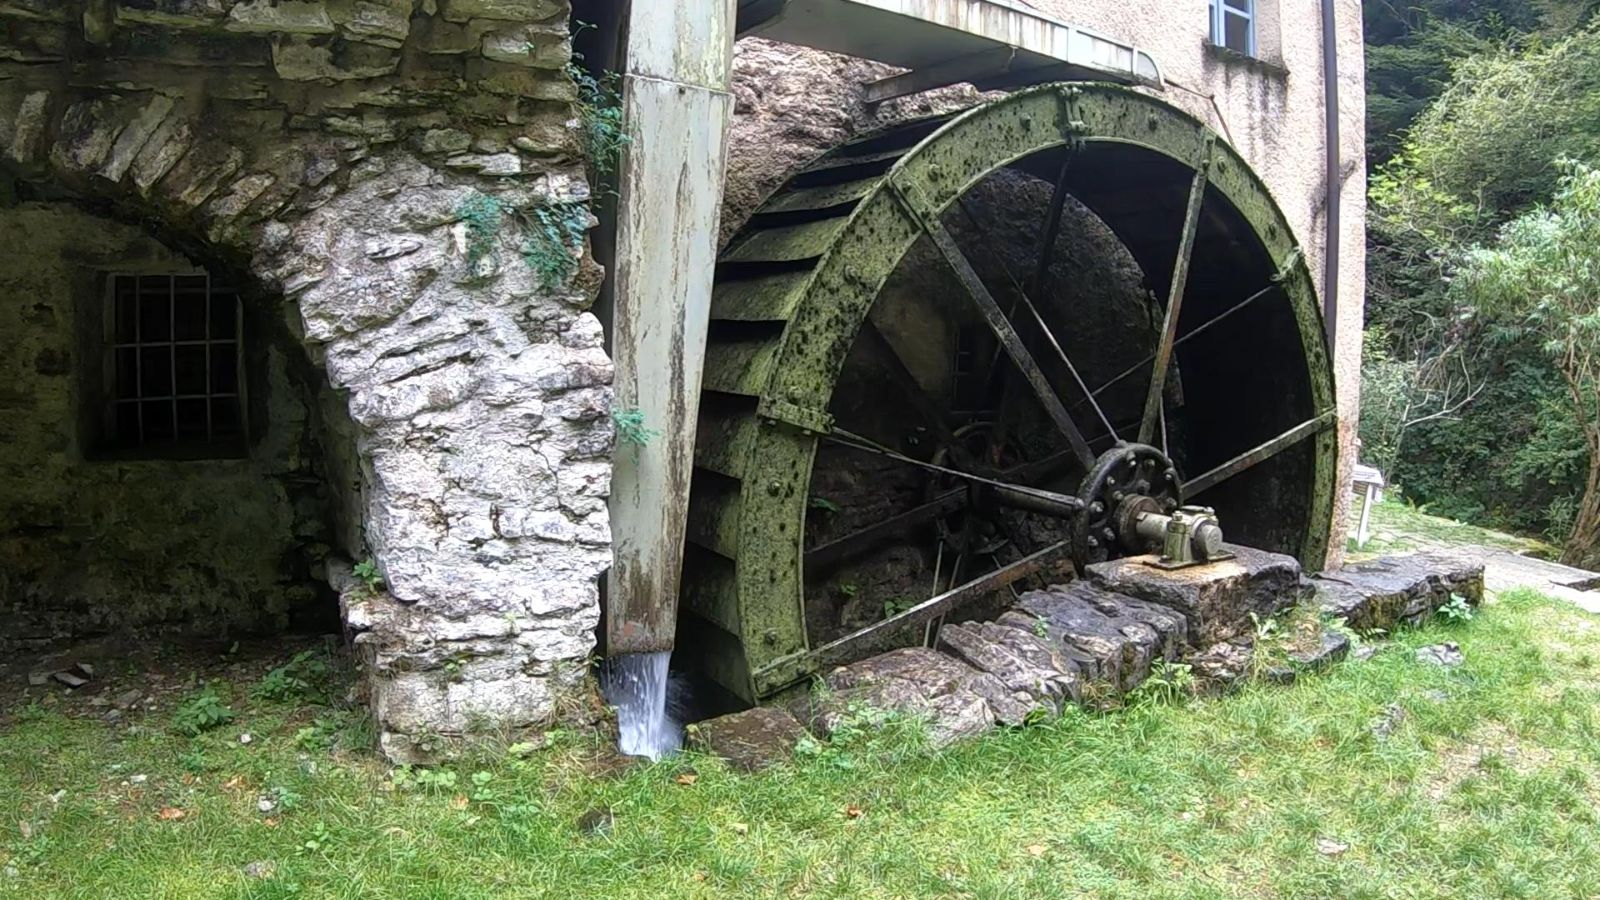 The Bruzella mill, from prehistory to the wheel.